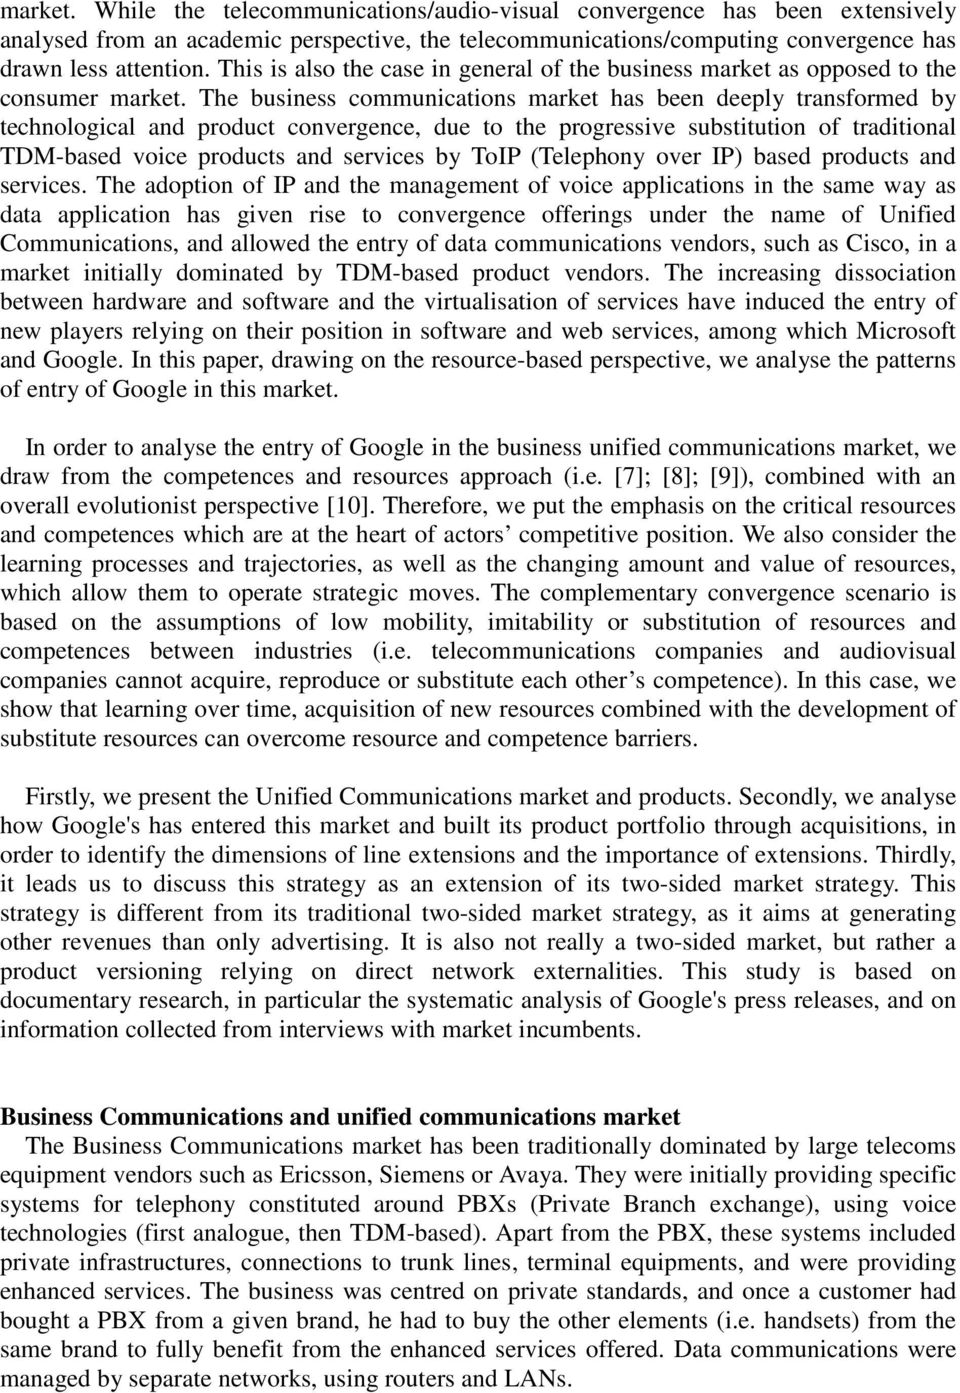 The business communications market has been deeply transformed by technological and product convergence, due to the progressive substitution of traditional TDM-based voice products and services by